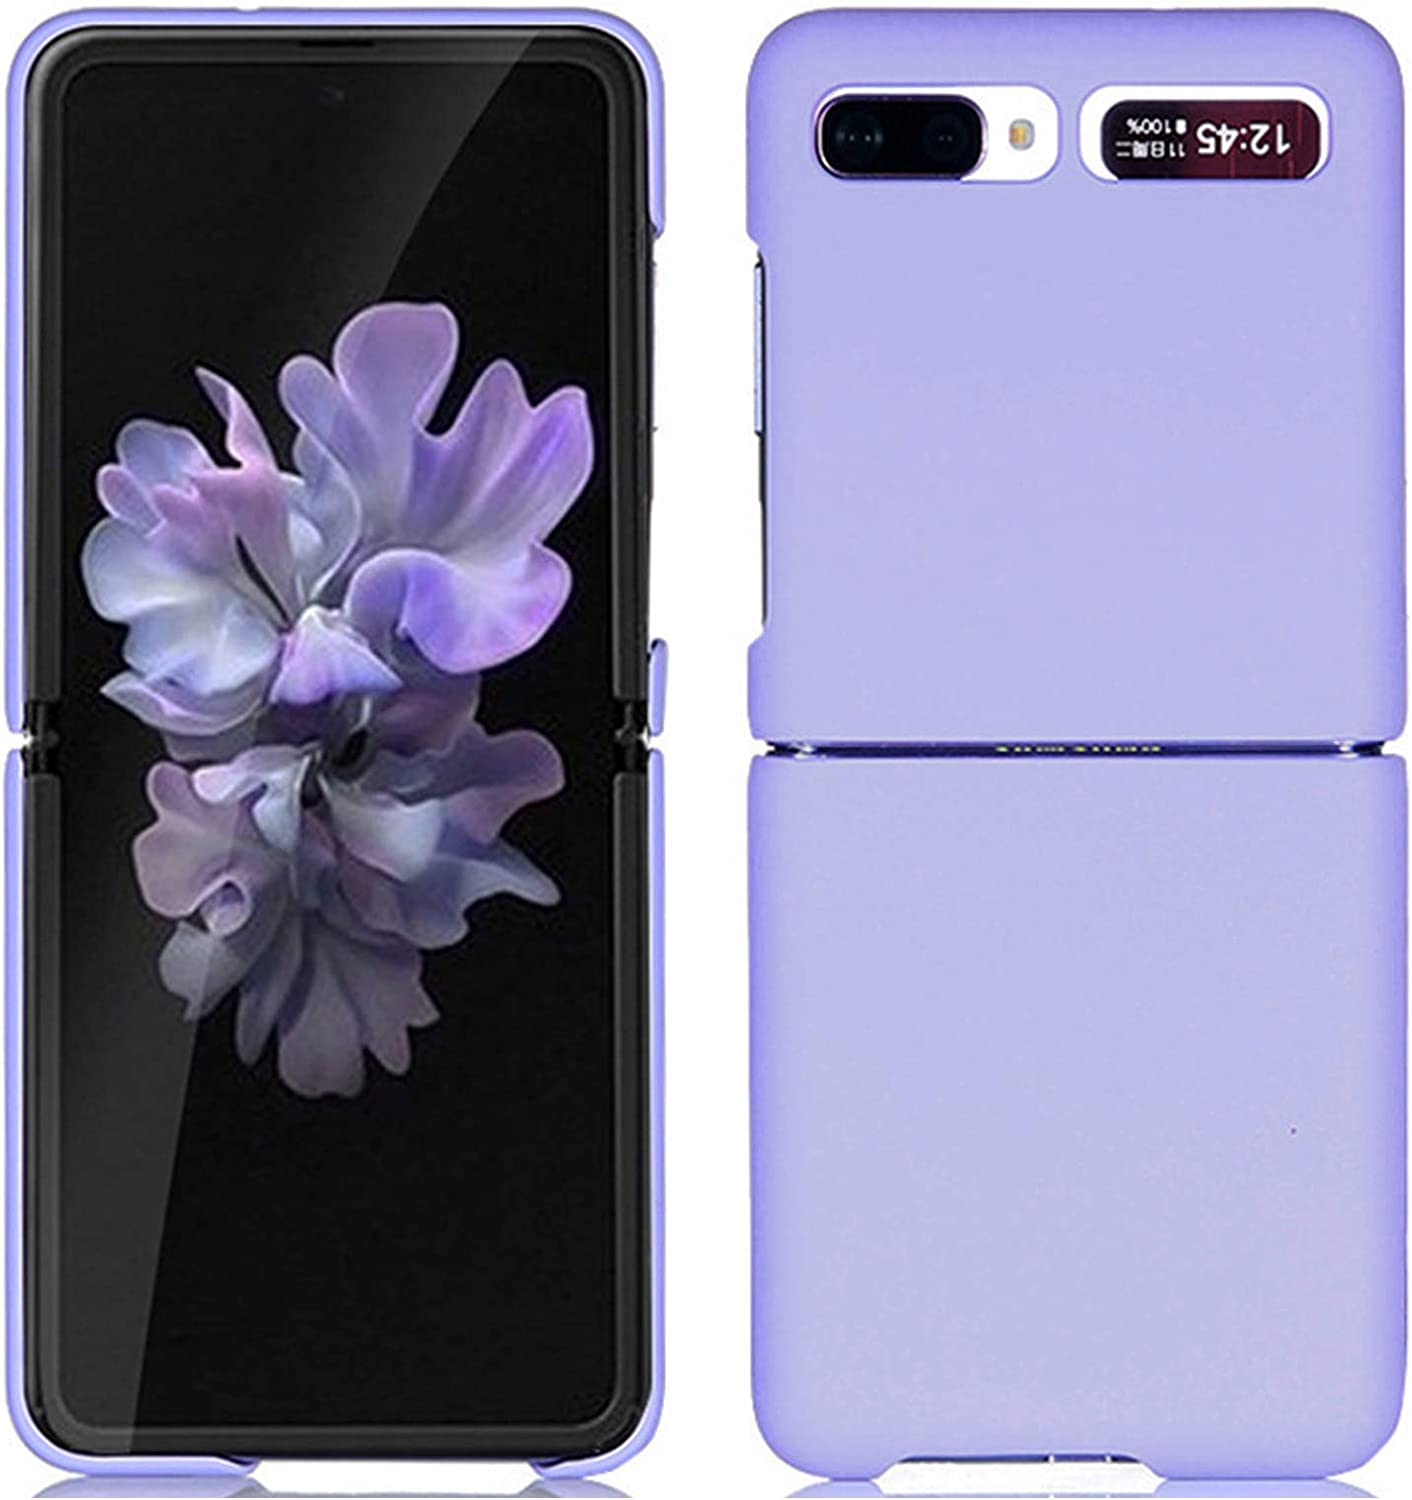 Miimall Compatible Samsung Galaxy Z Flip Case PC Hard Precise Ultra Thin Slim Bumper Anti-Scratch Shock-Proof Protector Case Cover Accessories for Galaxy Z Flip(Violet)